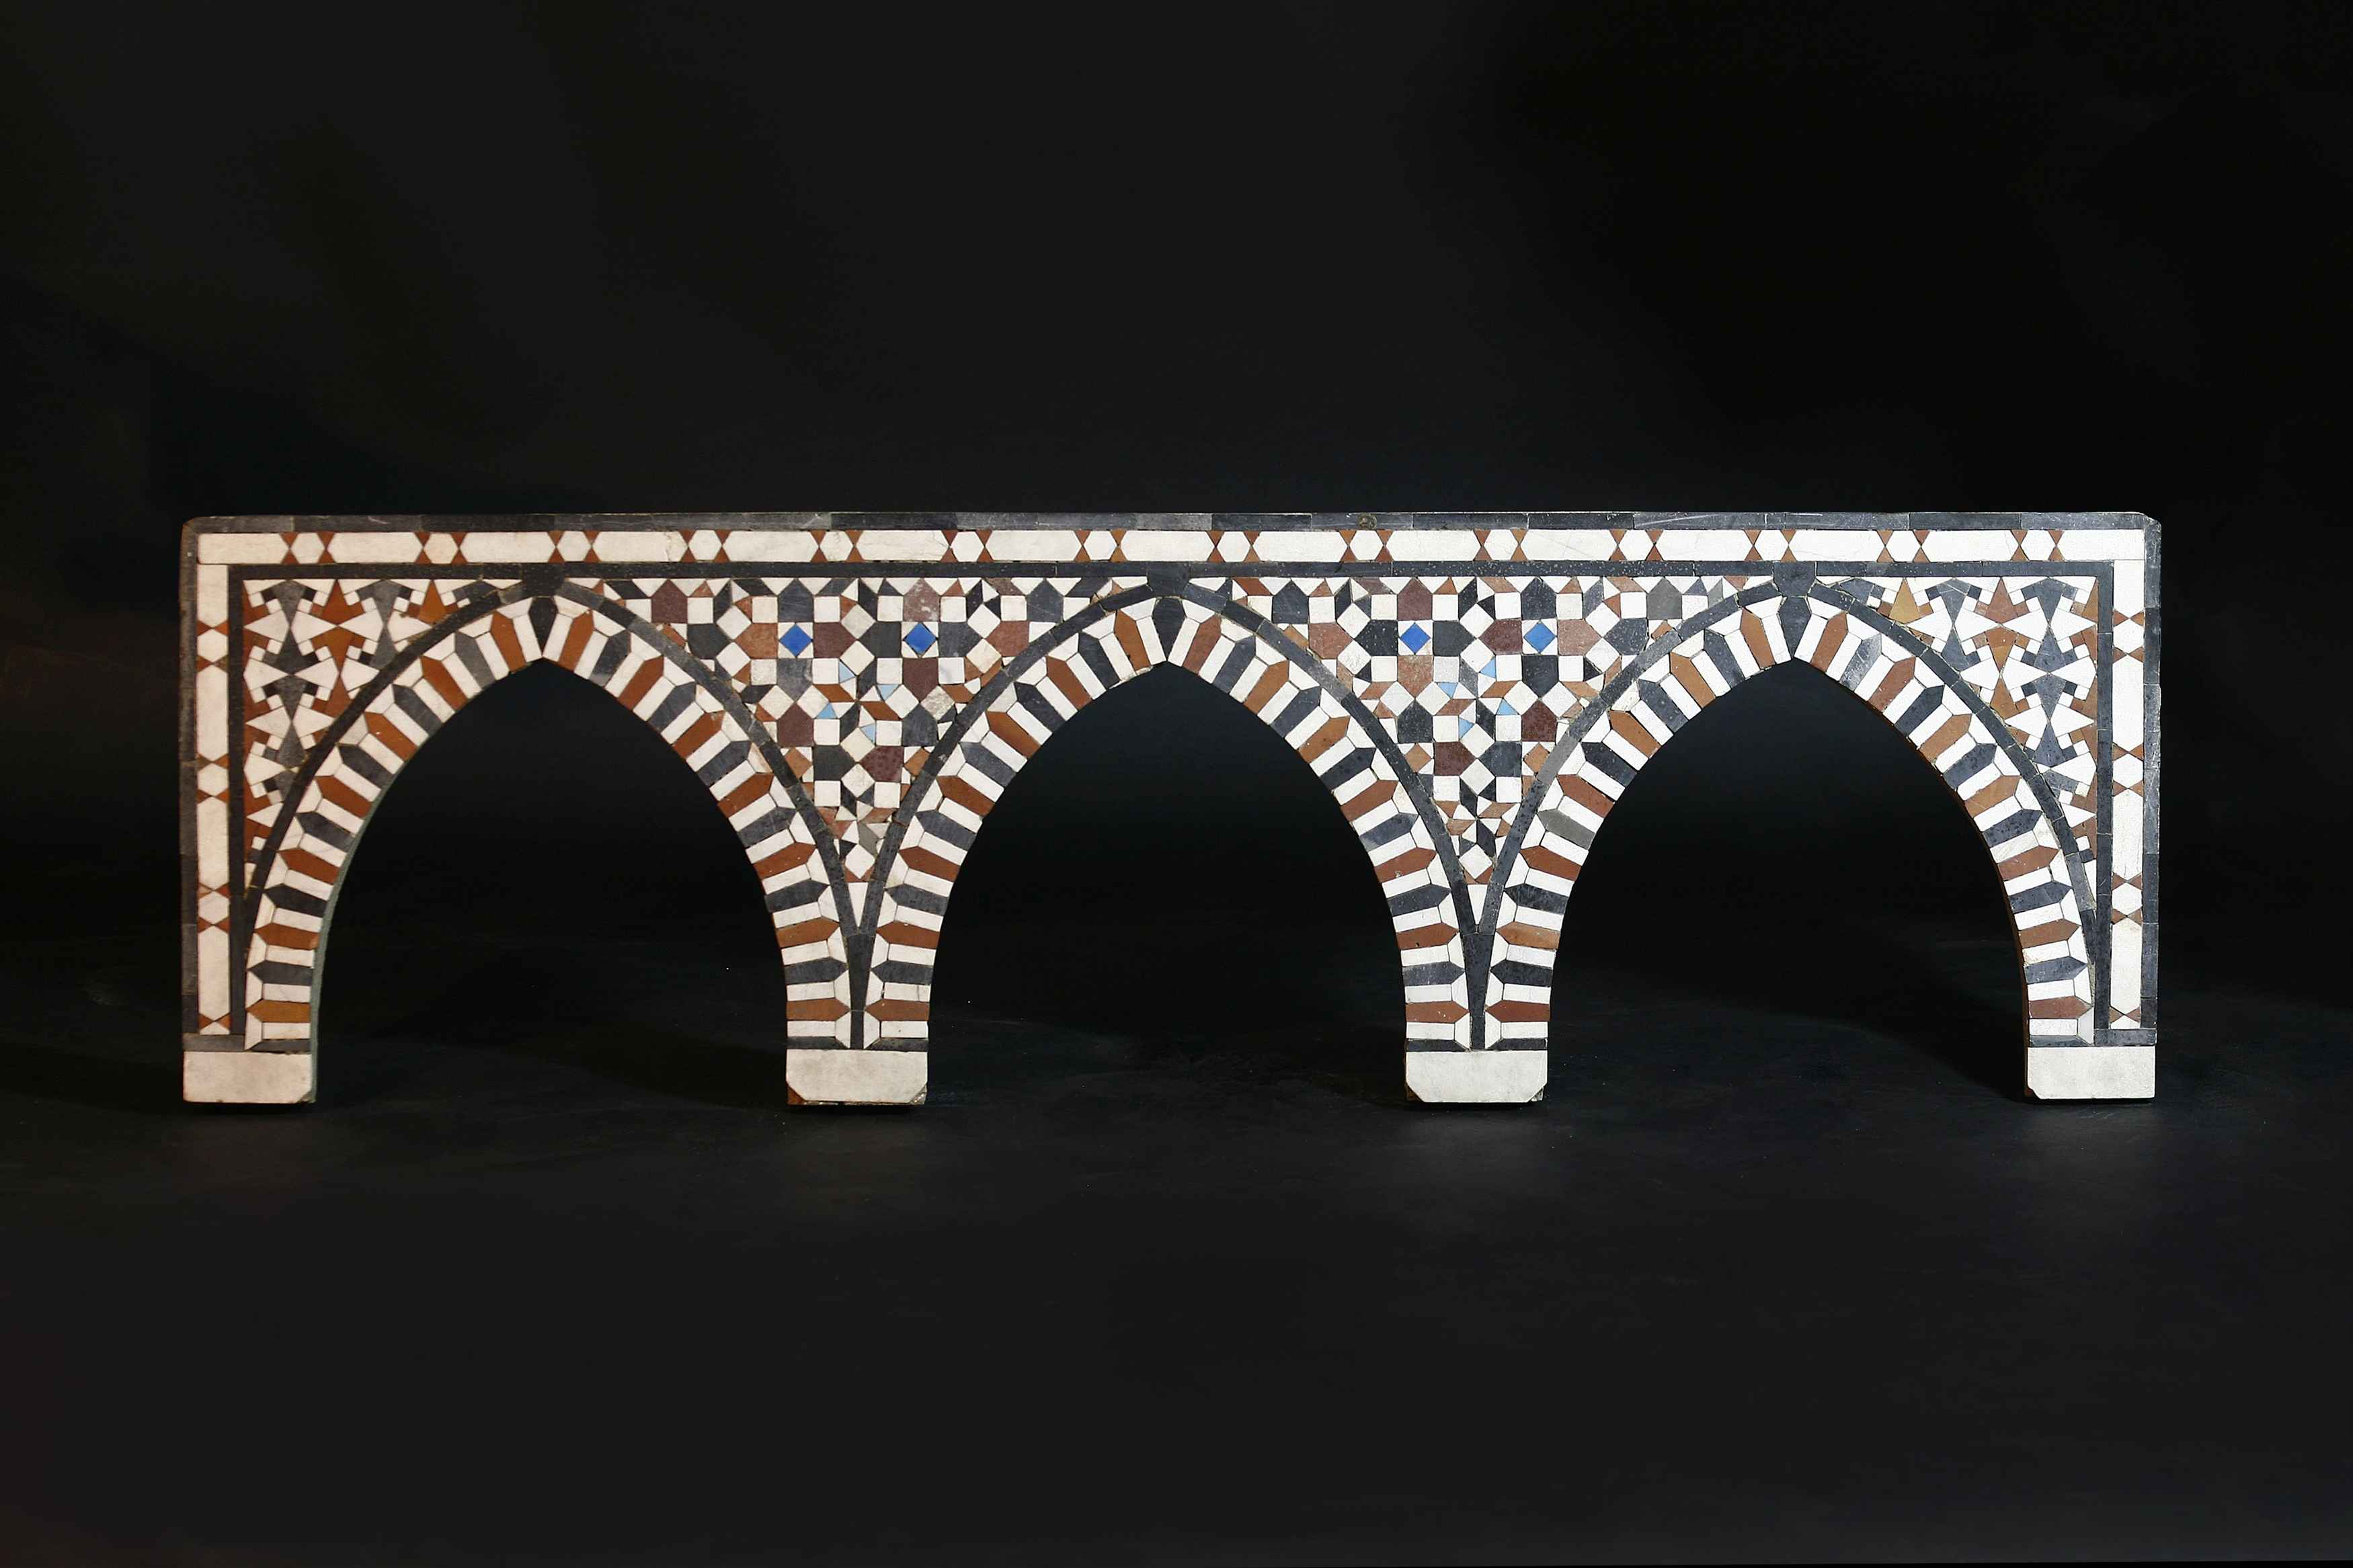 A Mamluk (15th-17th century CE) mosaic triple arched panel